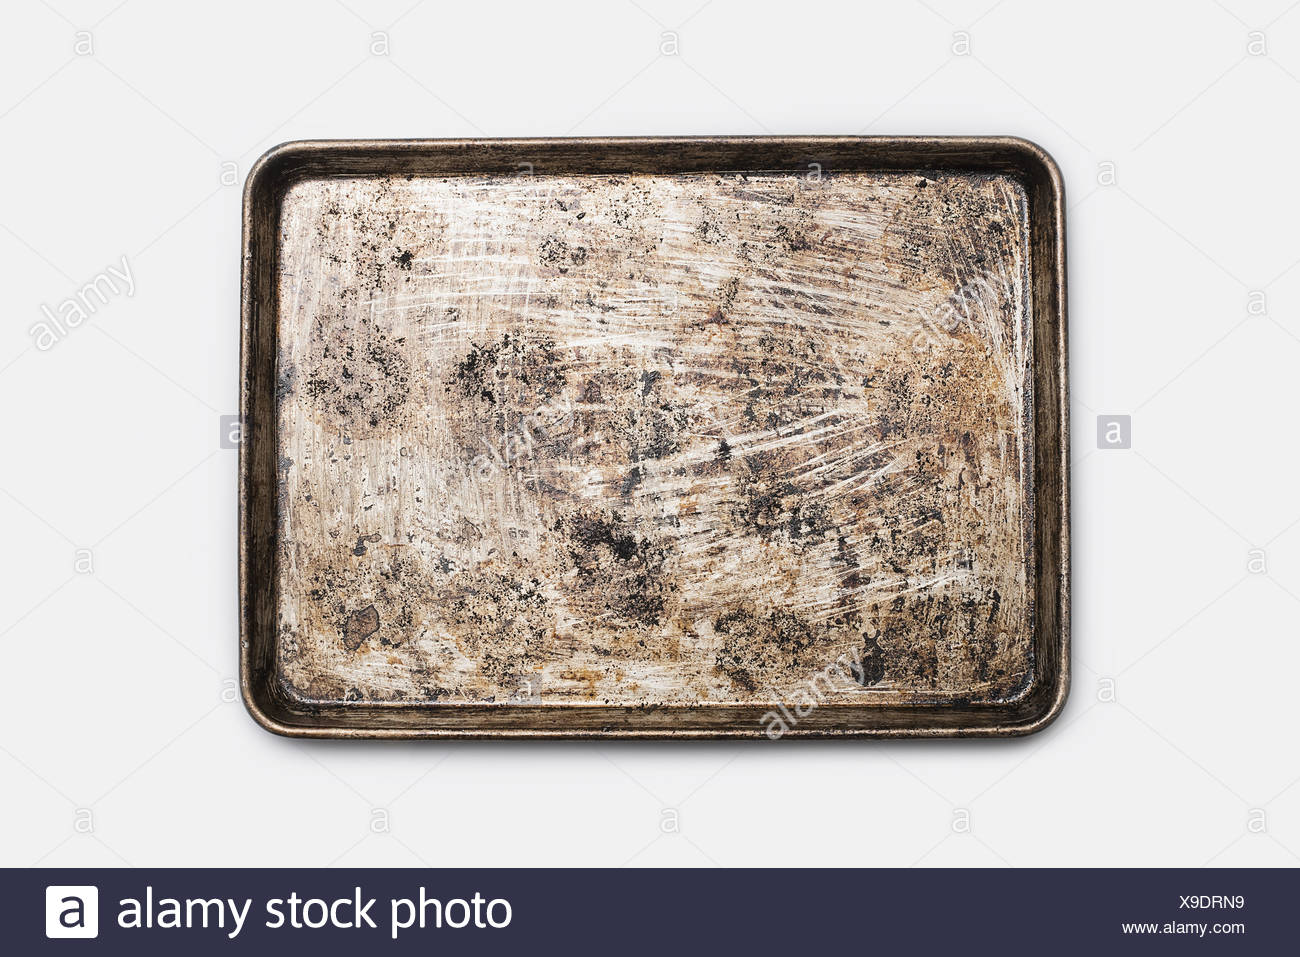 A well used, seasoned baking tray. Cookware. Baking sheet. Stock Photo